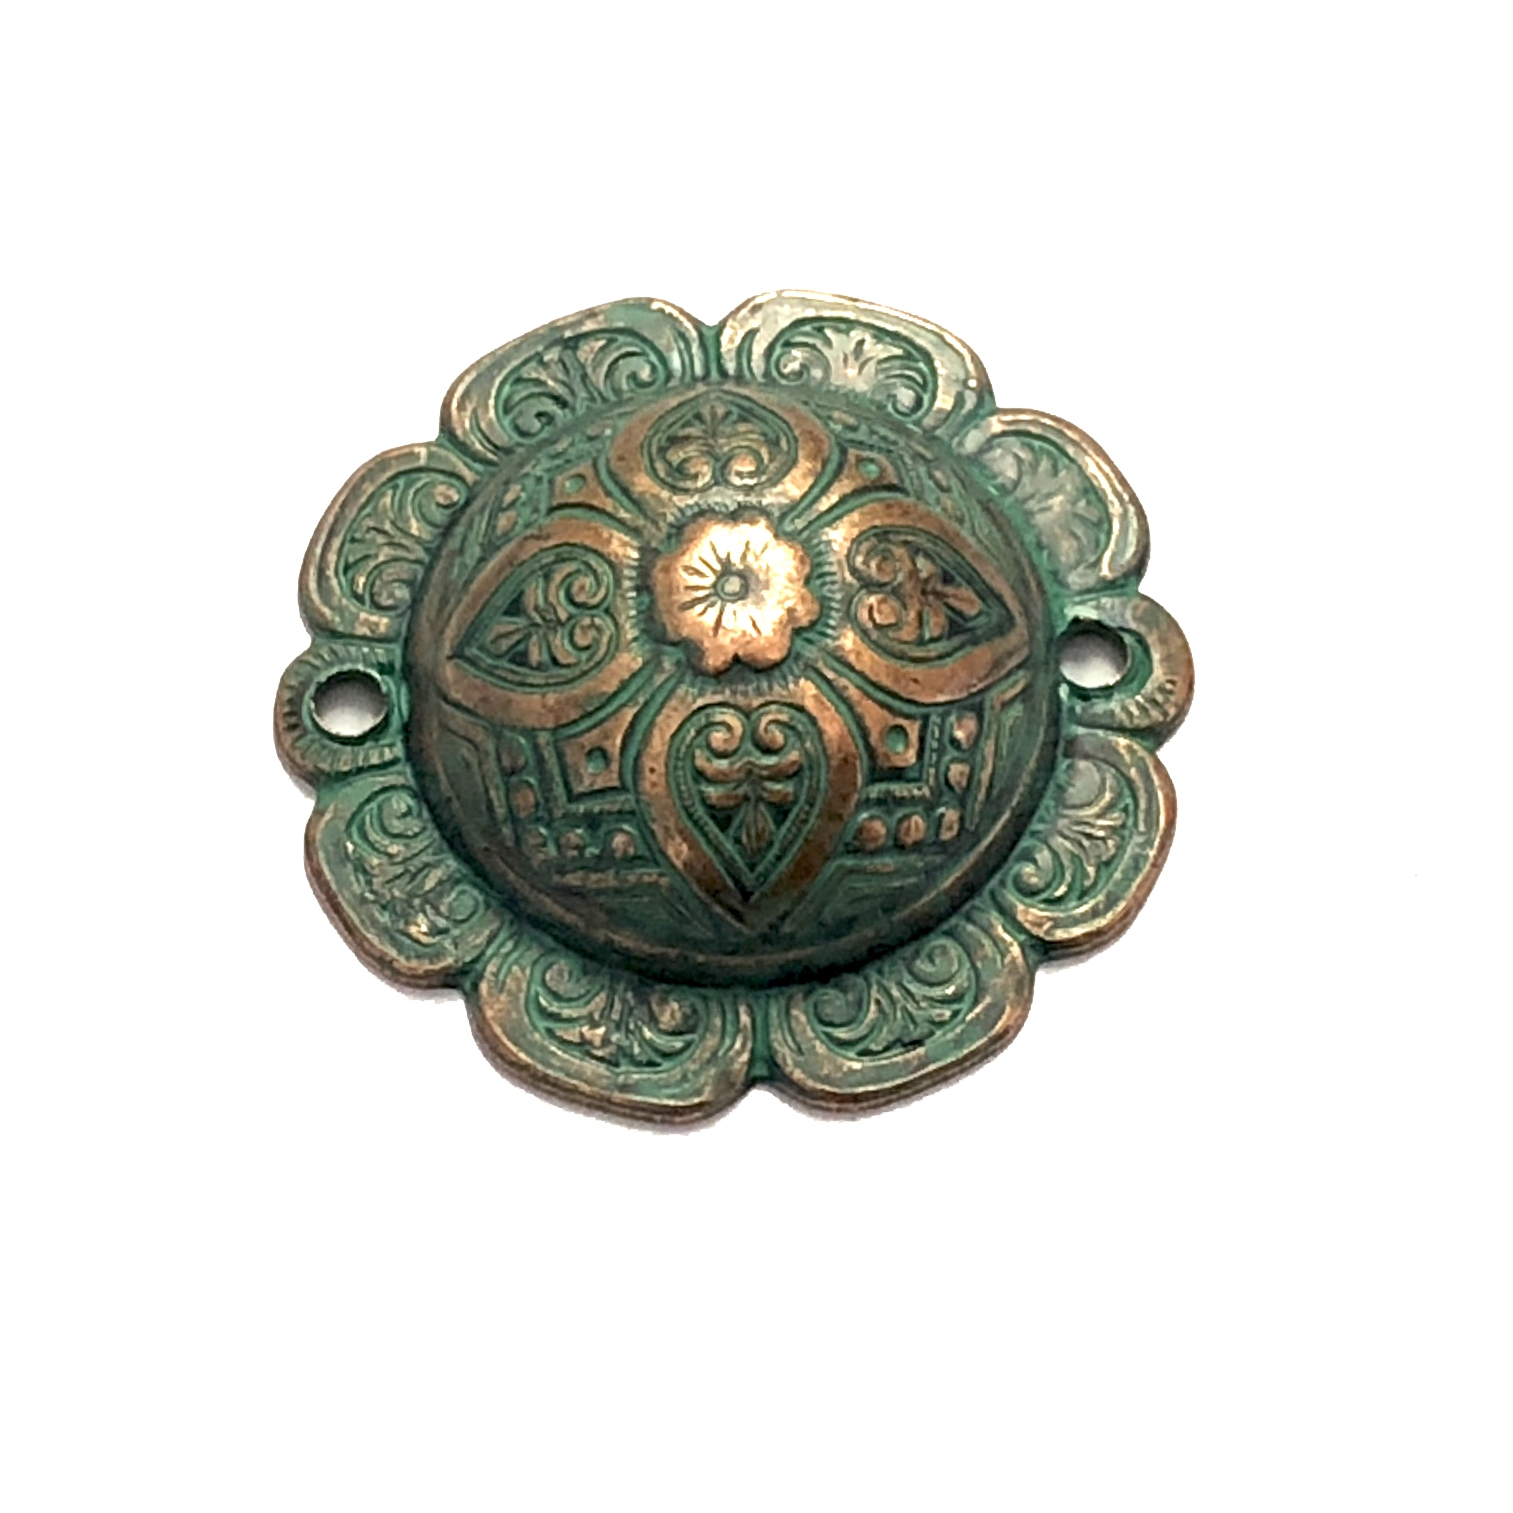 Domed Connector, Aqua Copper, Connector, 27mm, Brass Stamping, Domed, Dapt, Victorian, Floral Pattern, Floral, Floral Design, Connectors, Us Made, Nickel Free, B'sue Boutiques, Vintage Supplies, Jewelry Findings, Jewelry Supplies, Stampings Brass, 08179